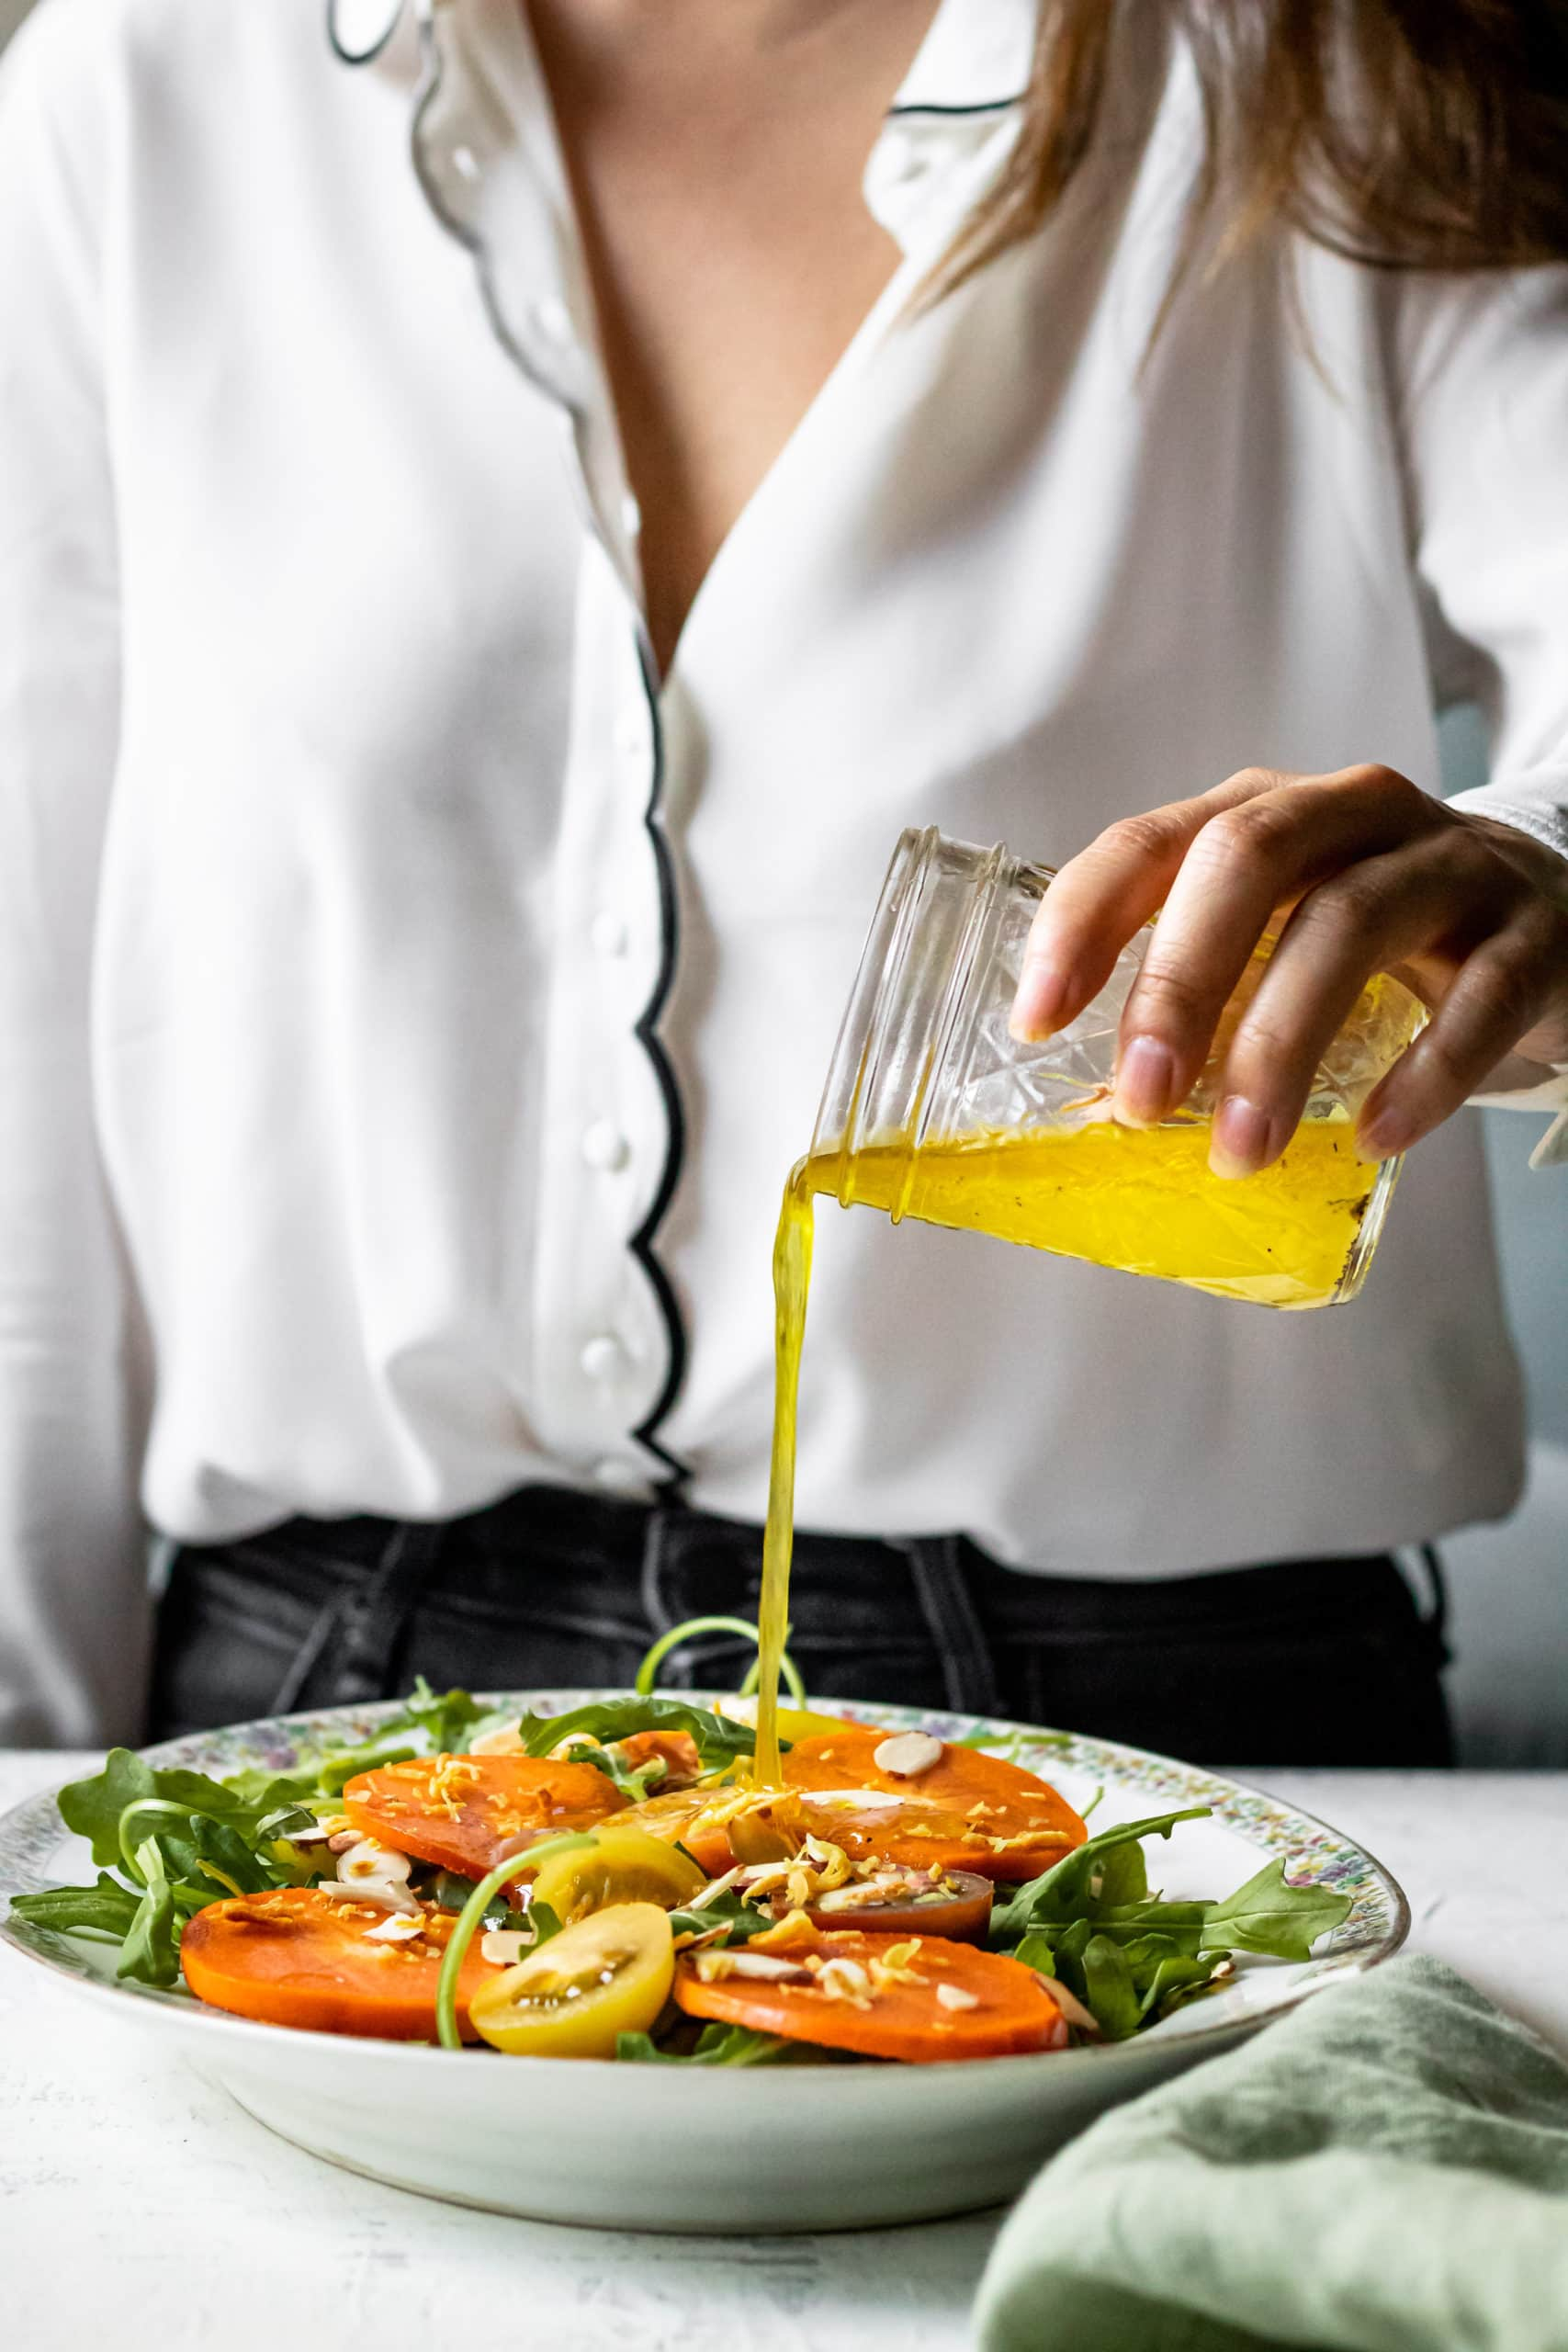 pouring salad dressing